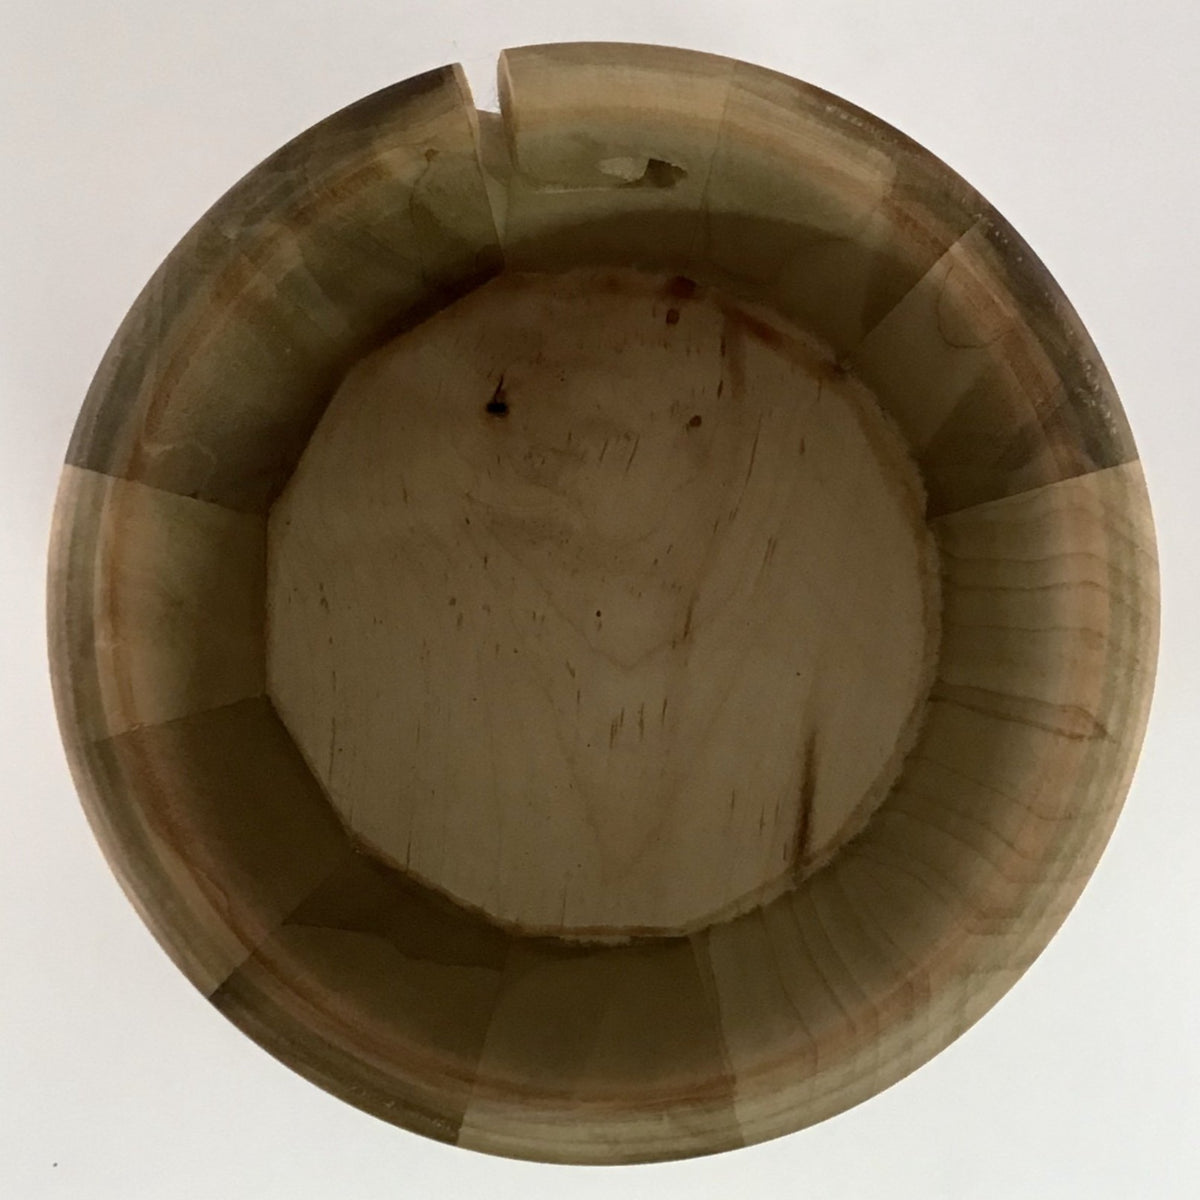 The inside of a wooden yarn bowl made from Poplar wood against a white backdrop